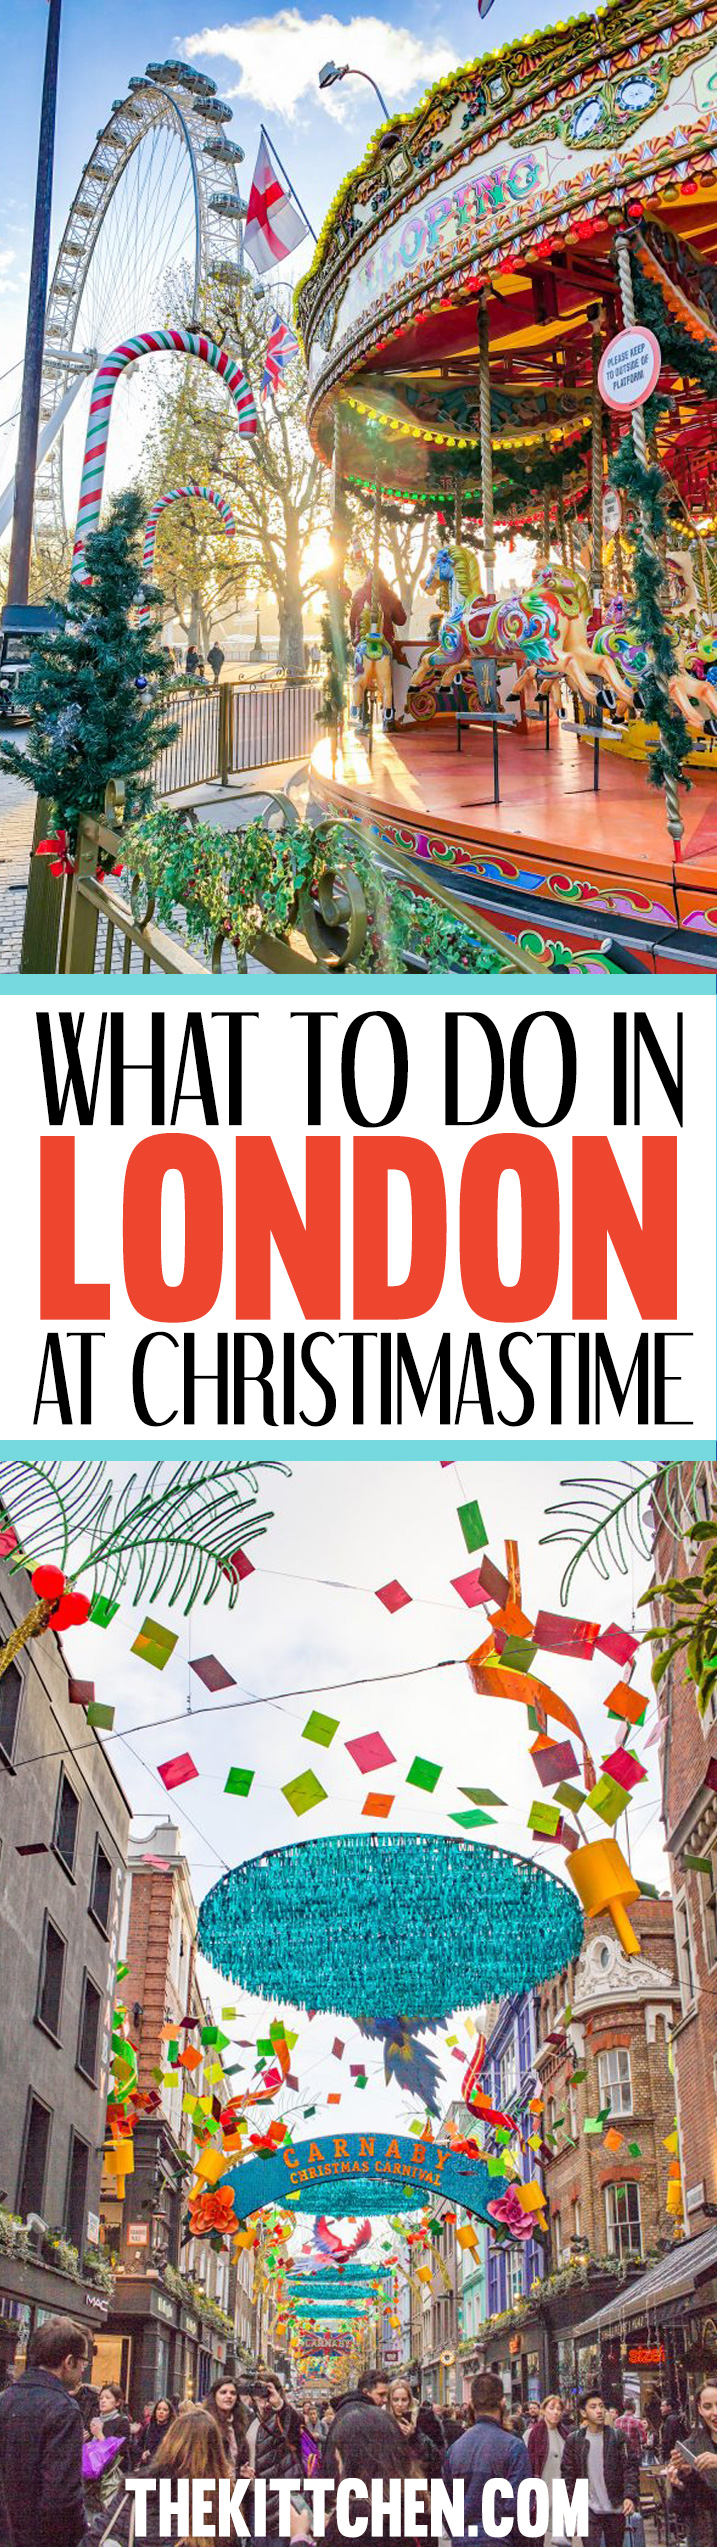 What to do in London at Christmastime - a complete travel guide!